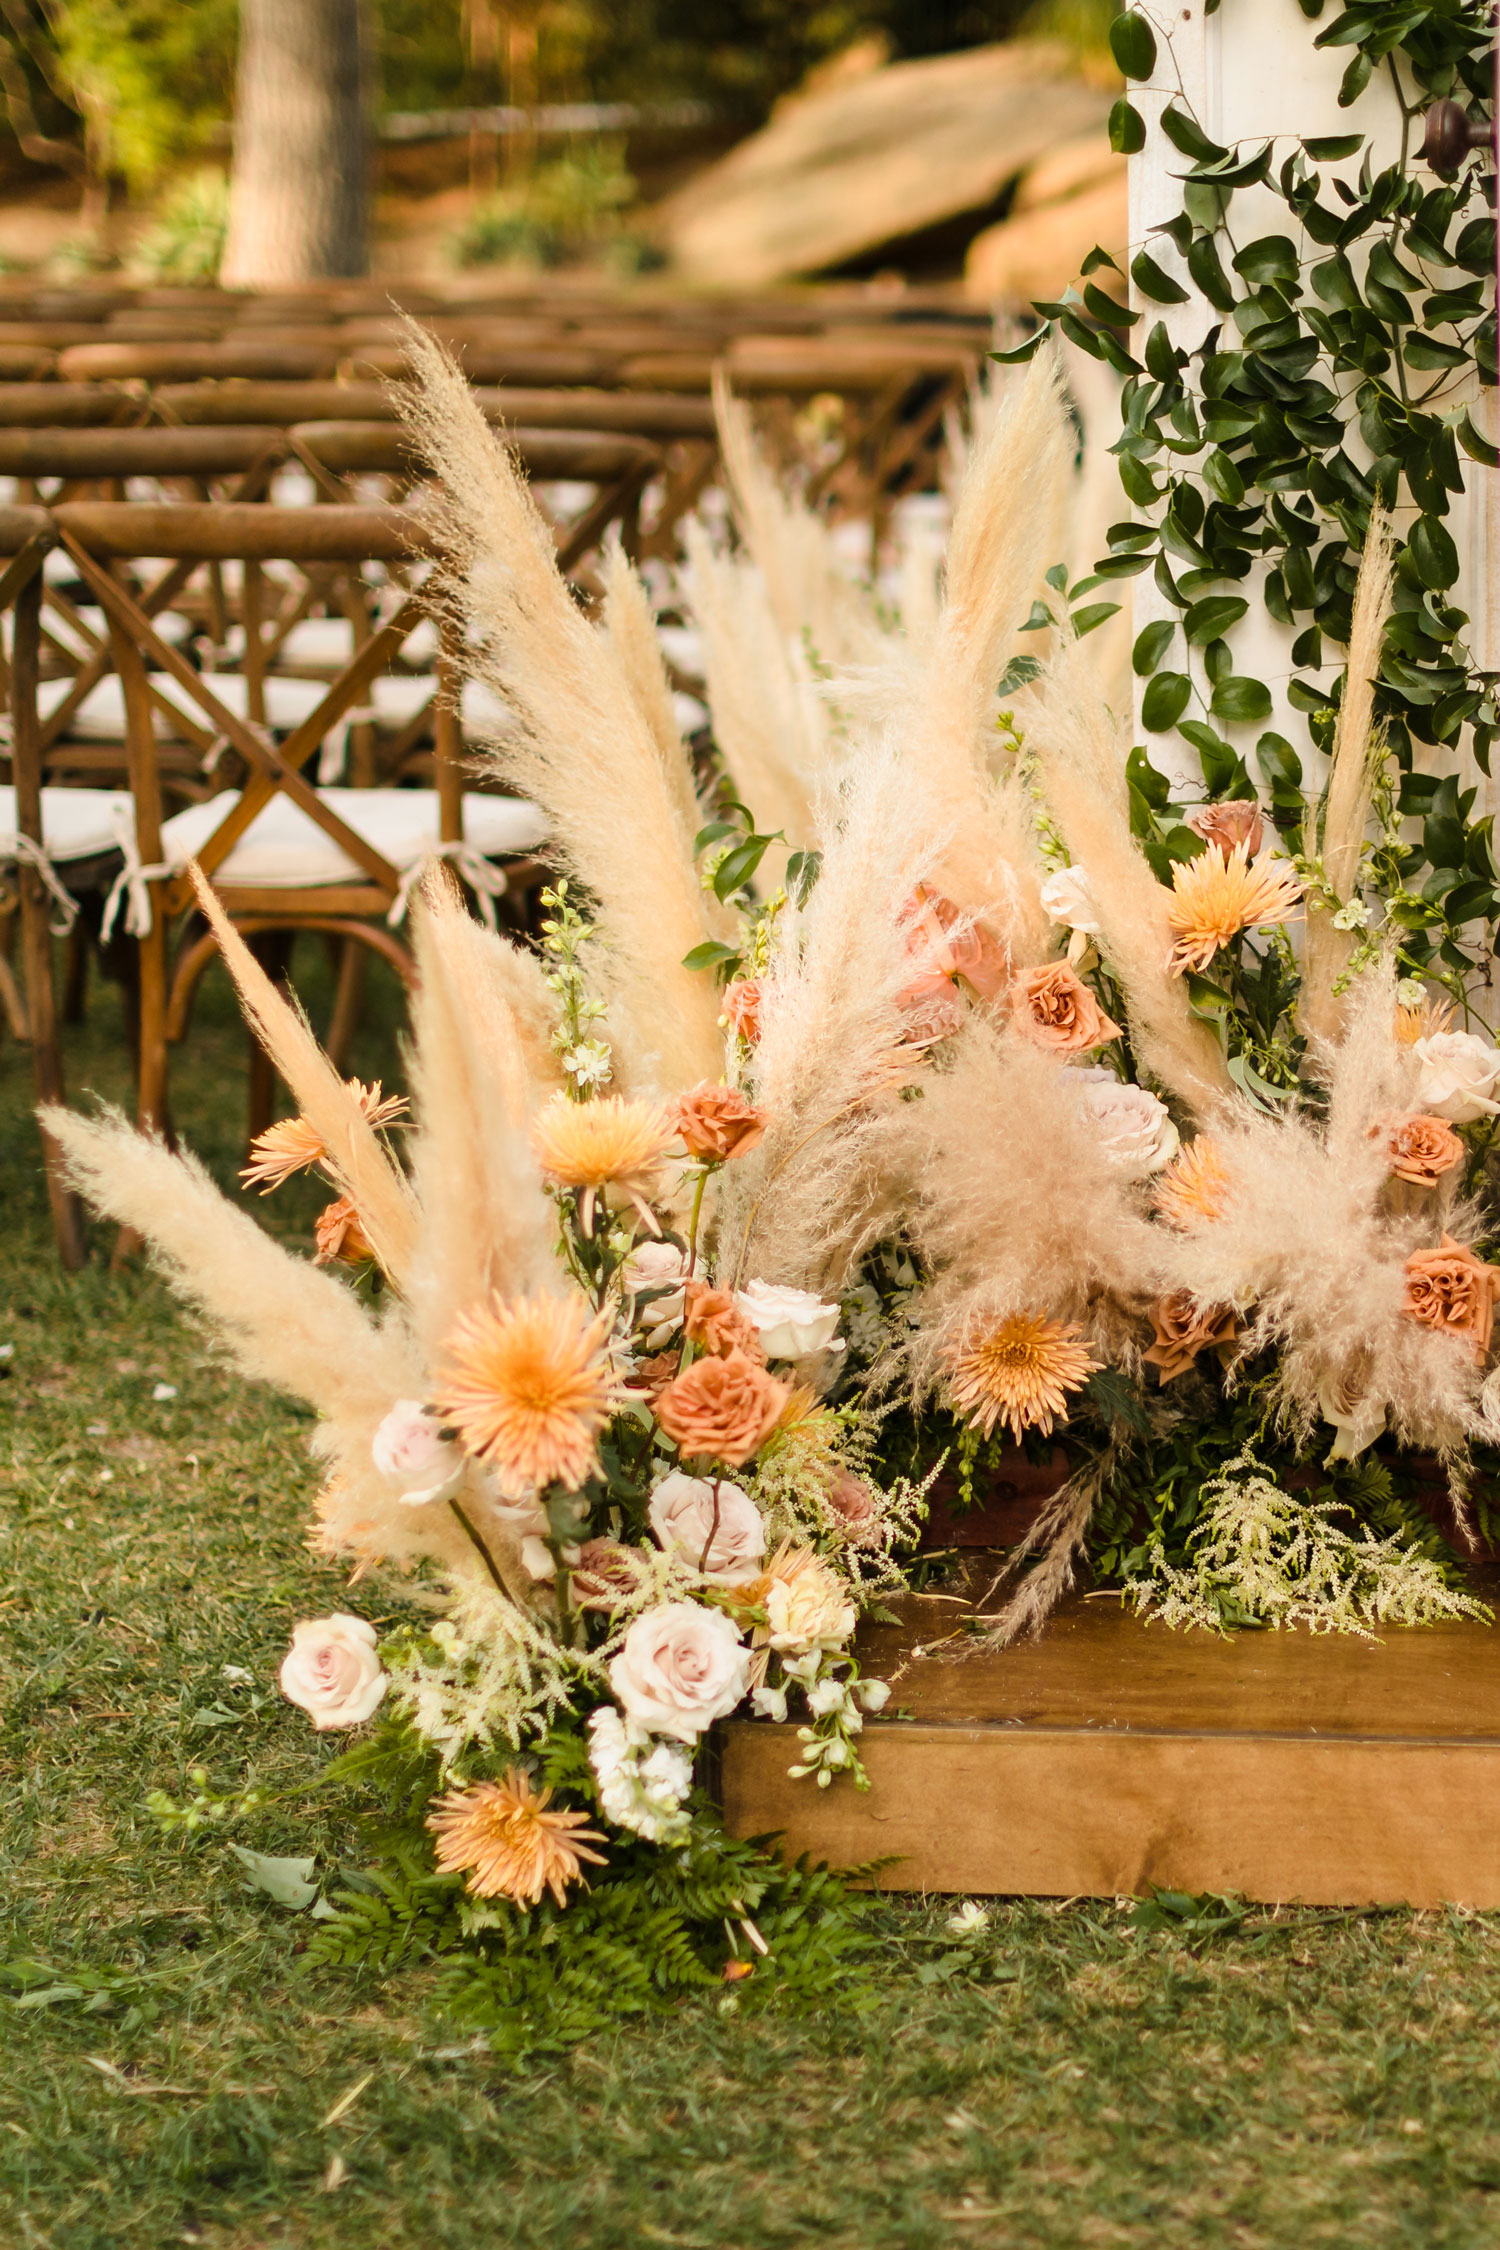 Top Chef Marcel Vigneron and Lauren Rae Levy real wedding planned by Tessa Lyn Events ceremony flowers pampas grass